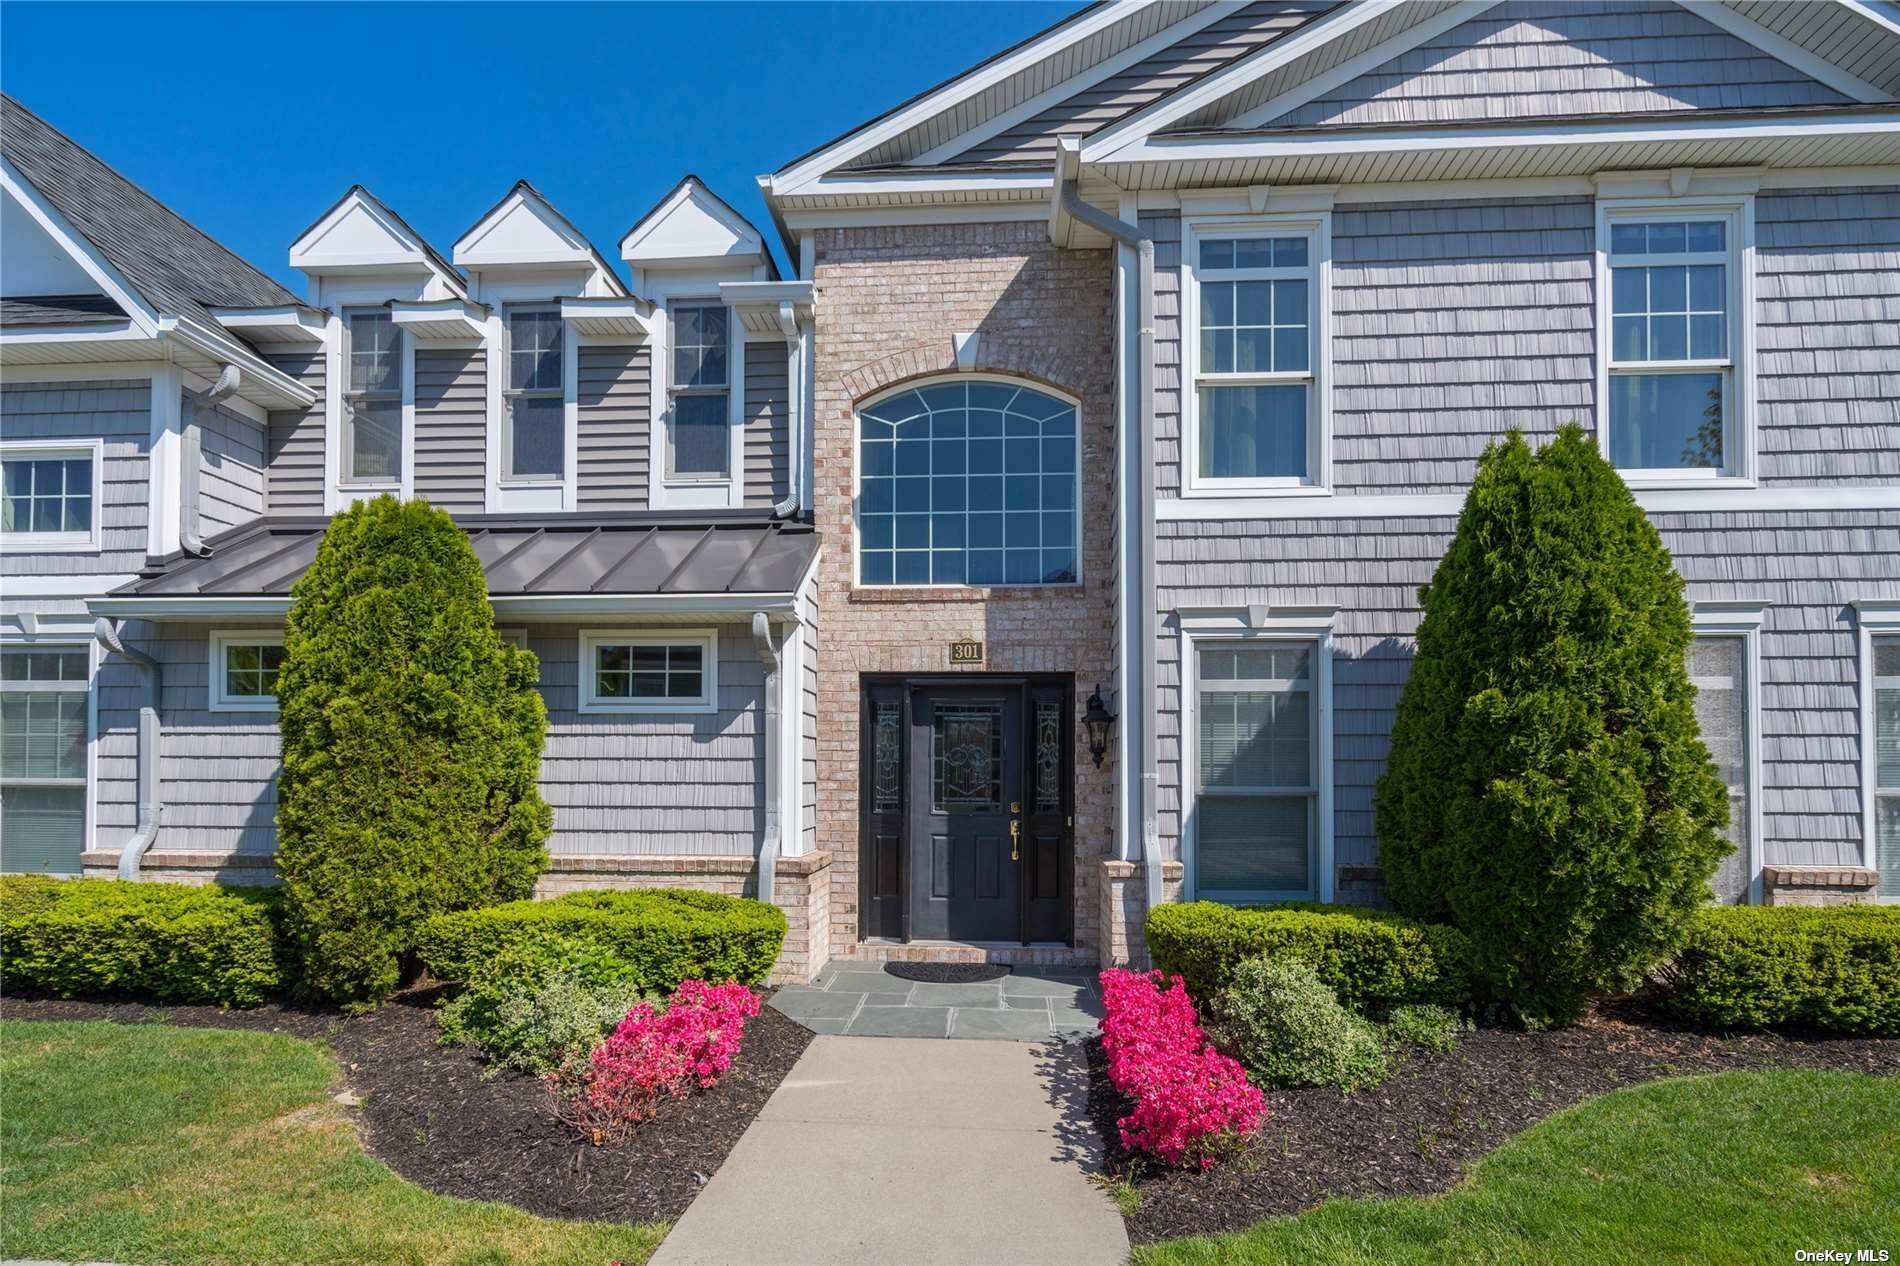 Residential for Sale at Trotting Lane Westbury, New York 11590 United States